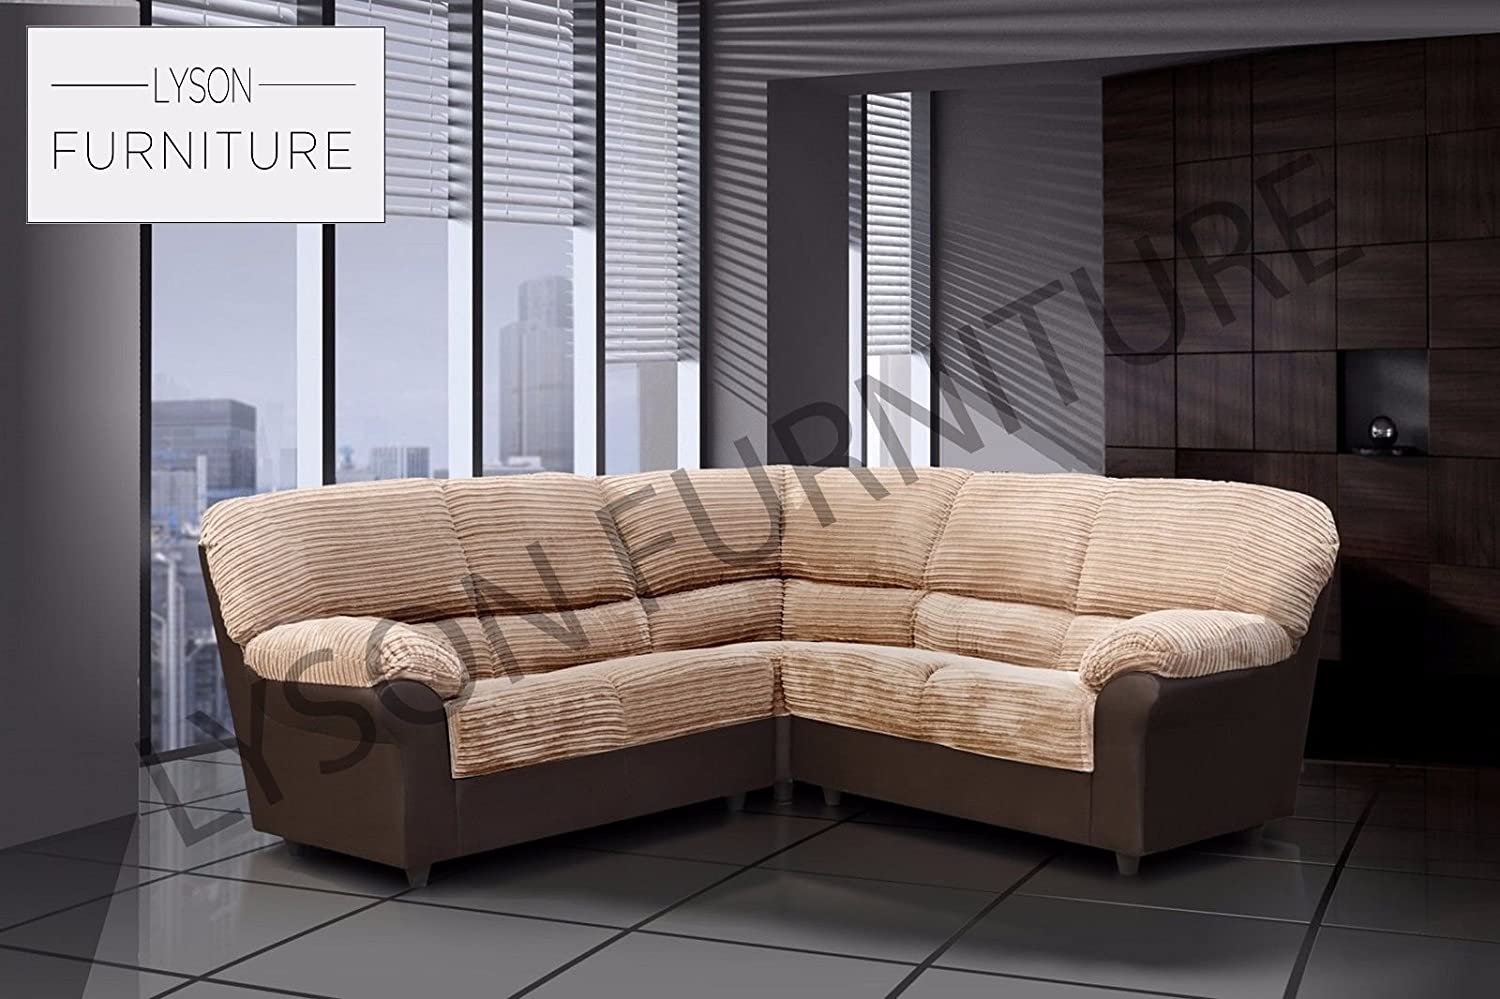 Awesome Lyson Furniture New Large Candy Corner Sofa Fabric With Faux Leather 2Cr2 225Cm X 225Cm Brown Home Interior And Landscaping Mentranervesignezvosmurscom